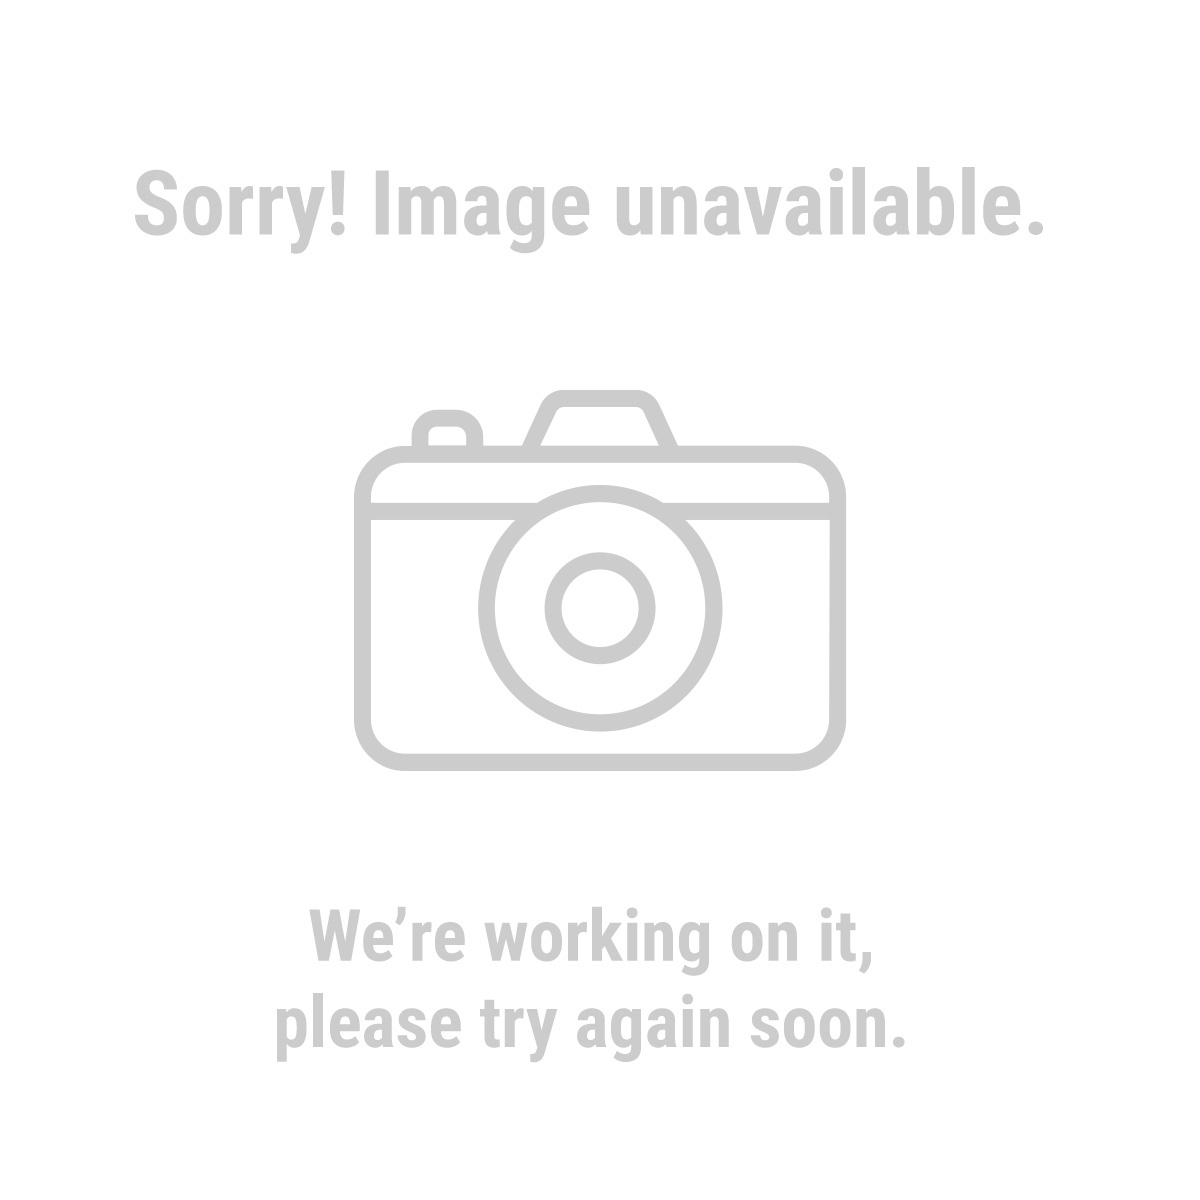 Western Safety 94700 Reflective Safety Vest - X-Large